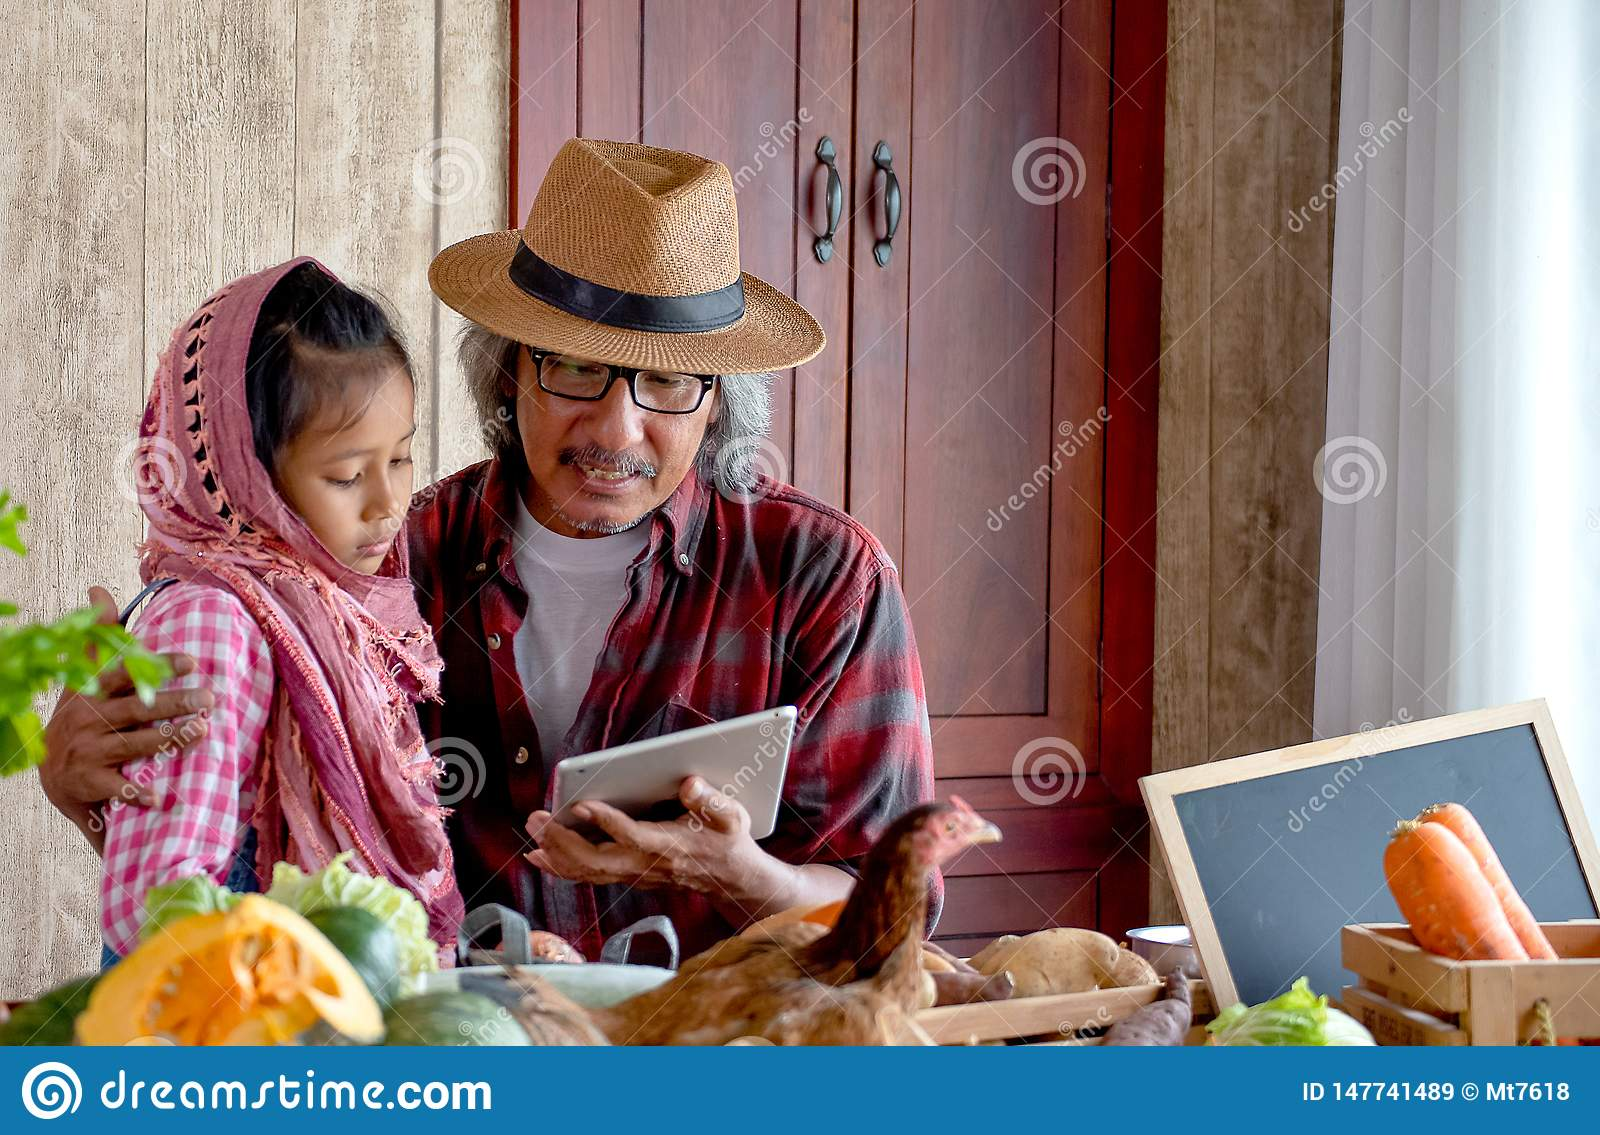 Old man grandfather with hat explain about his menu for cooking to his grandchild by using tablet in the kitchen